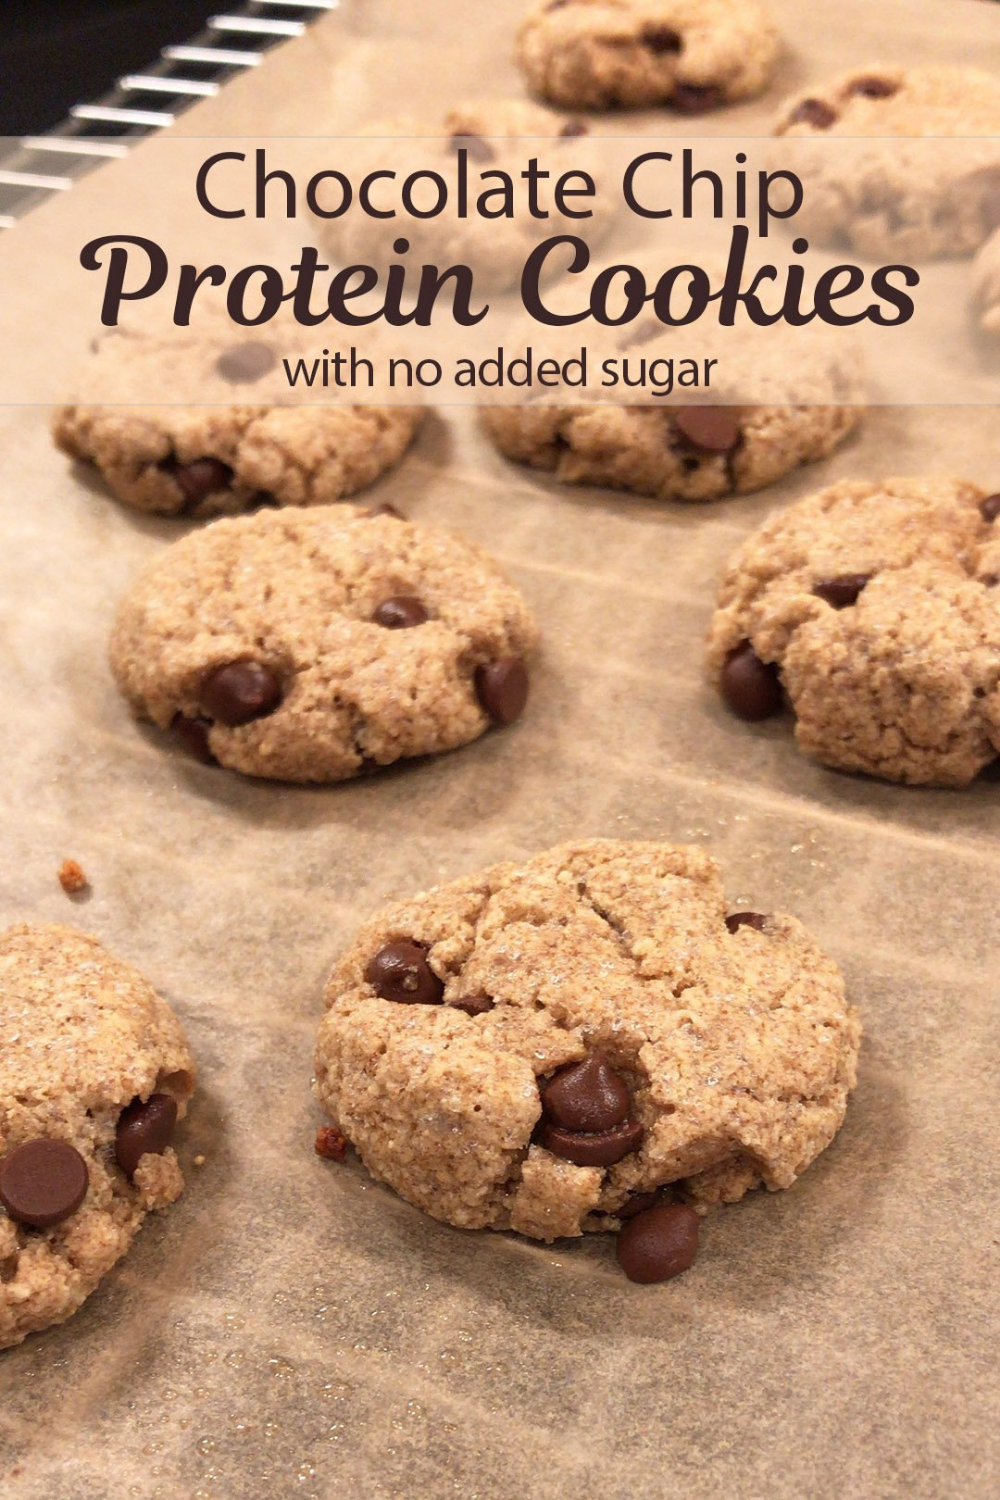 Protein Cookie Mix Chocolate Chip Protein Cookies In